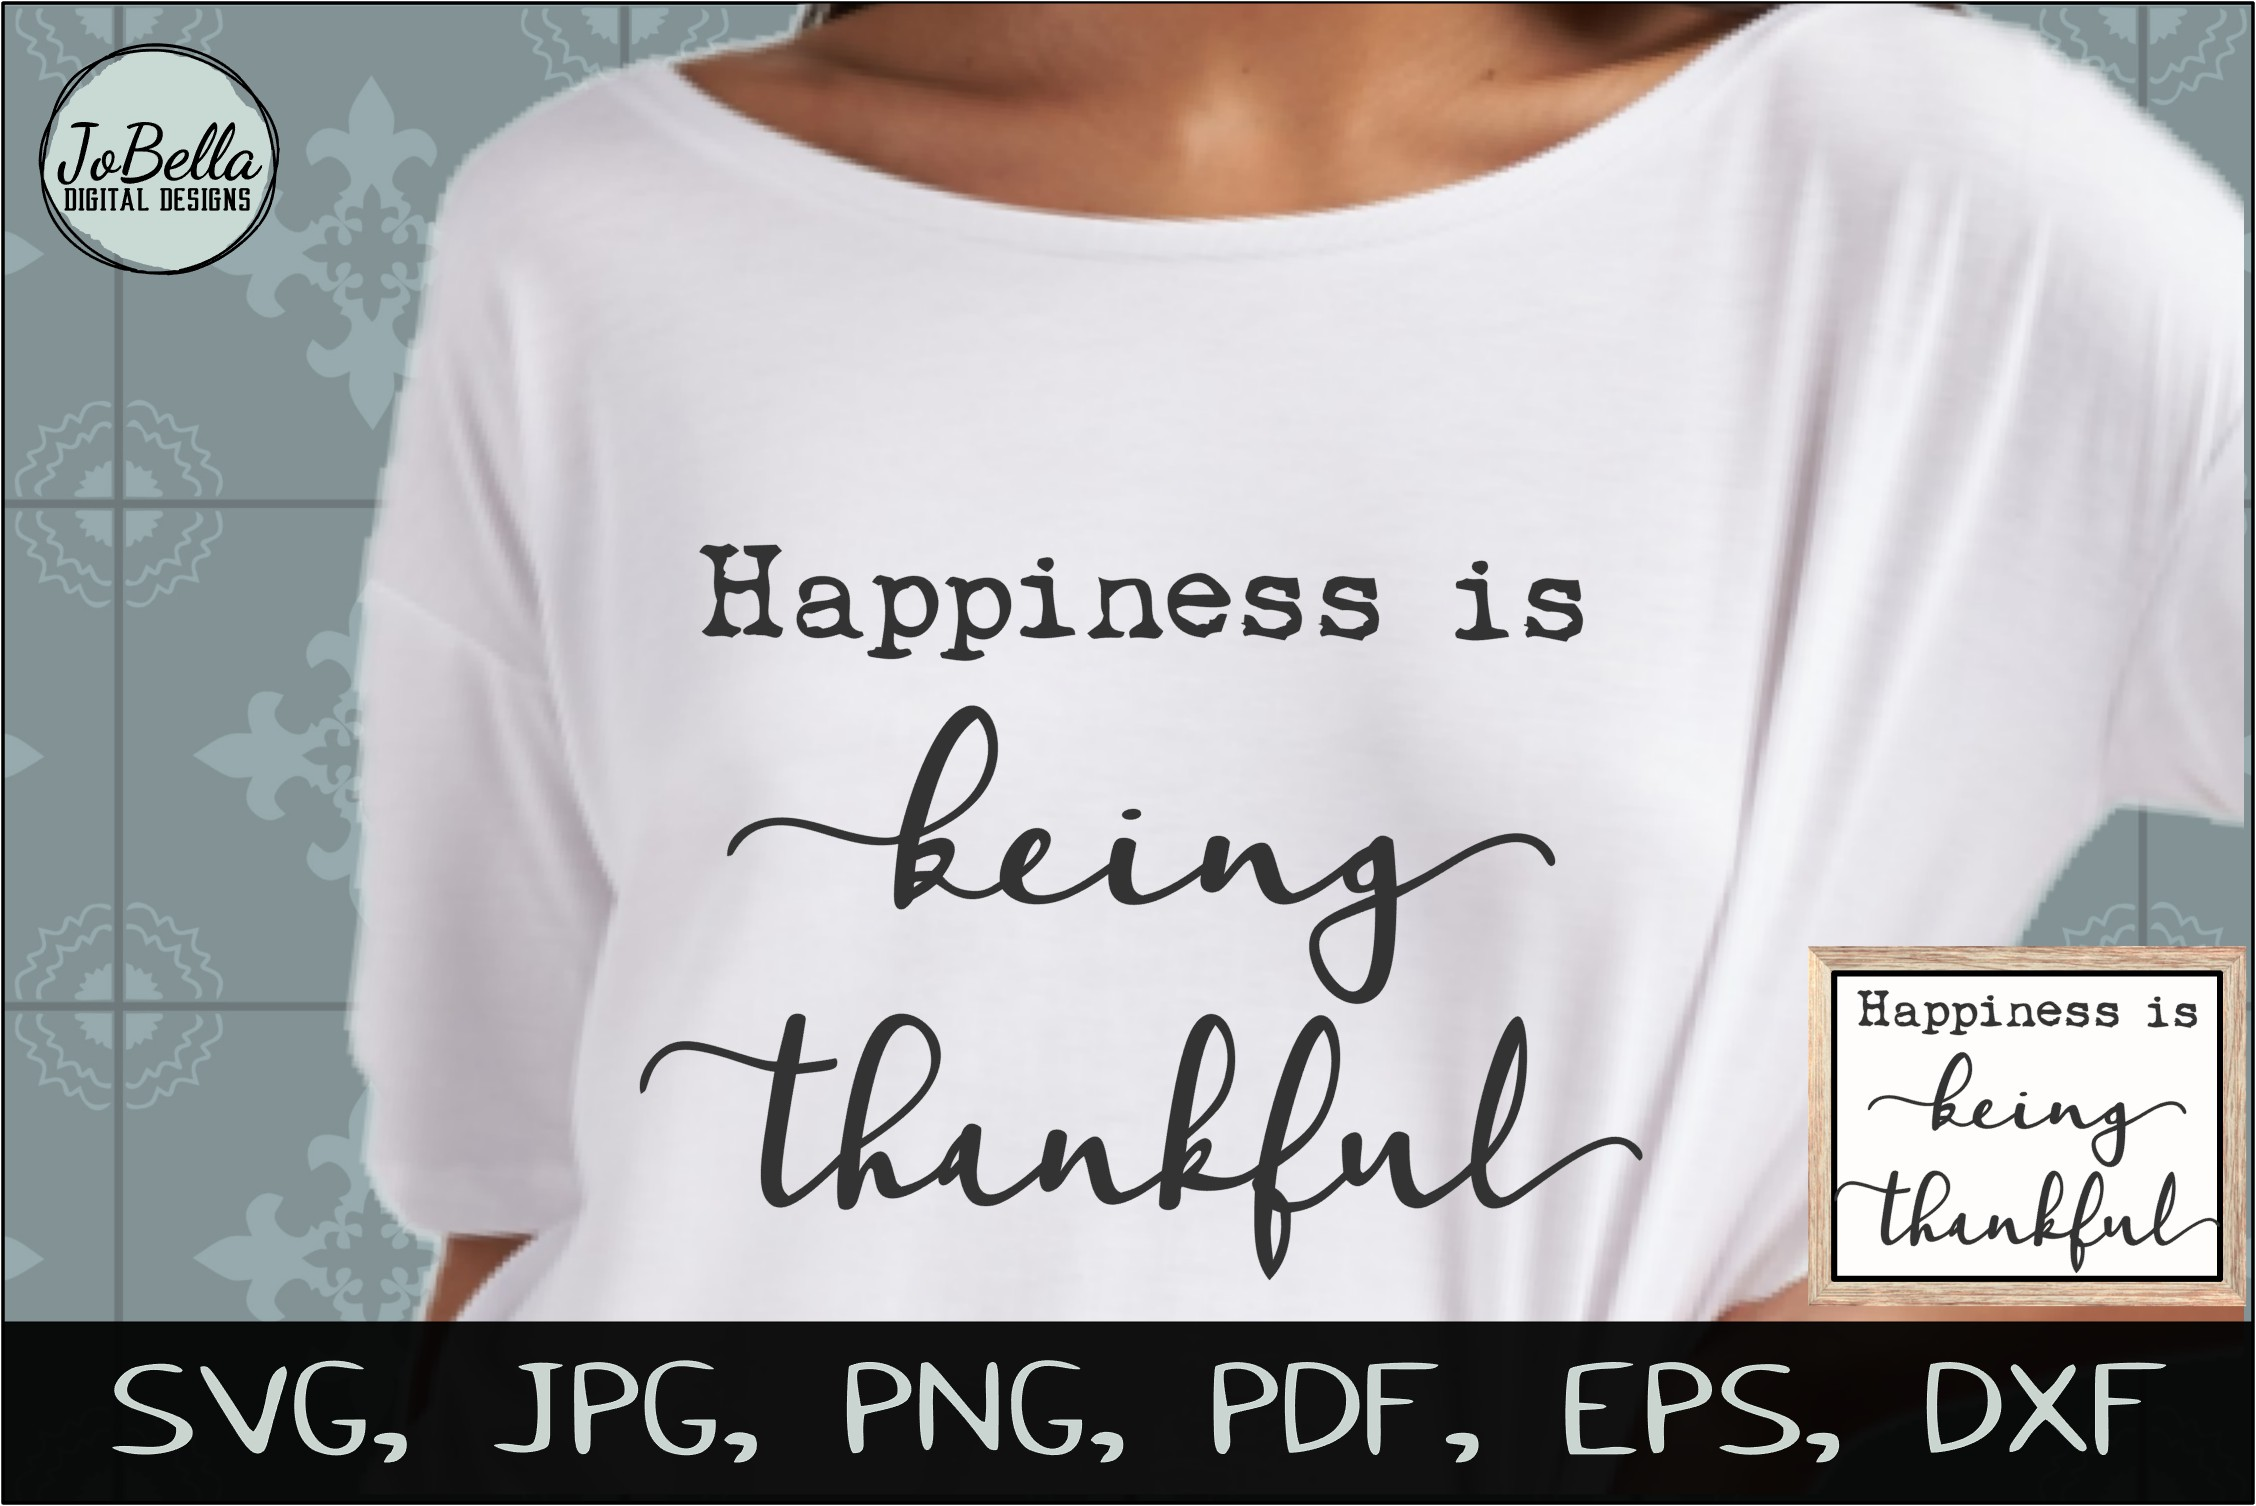 Being Thankful Thanksgiving SVG, Sublimation PNG & Printable example image 3